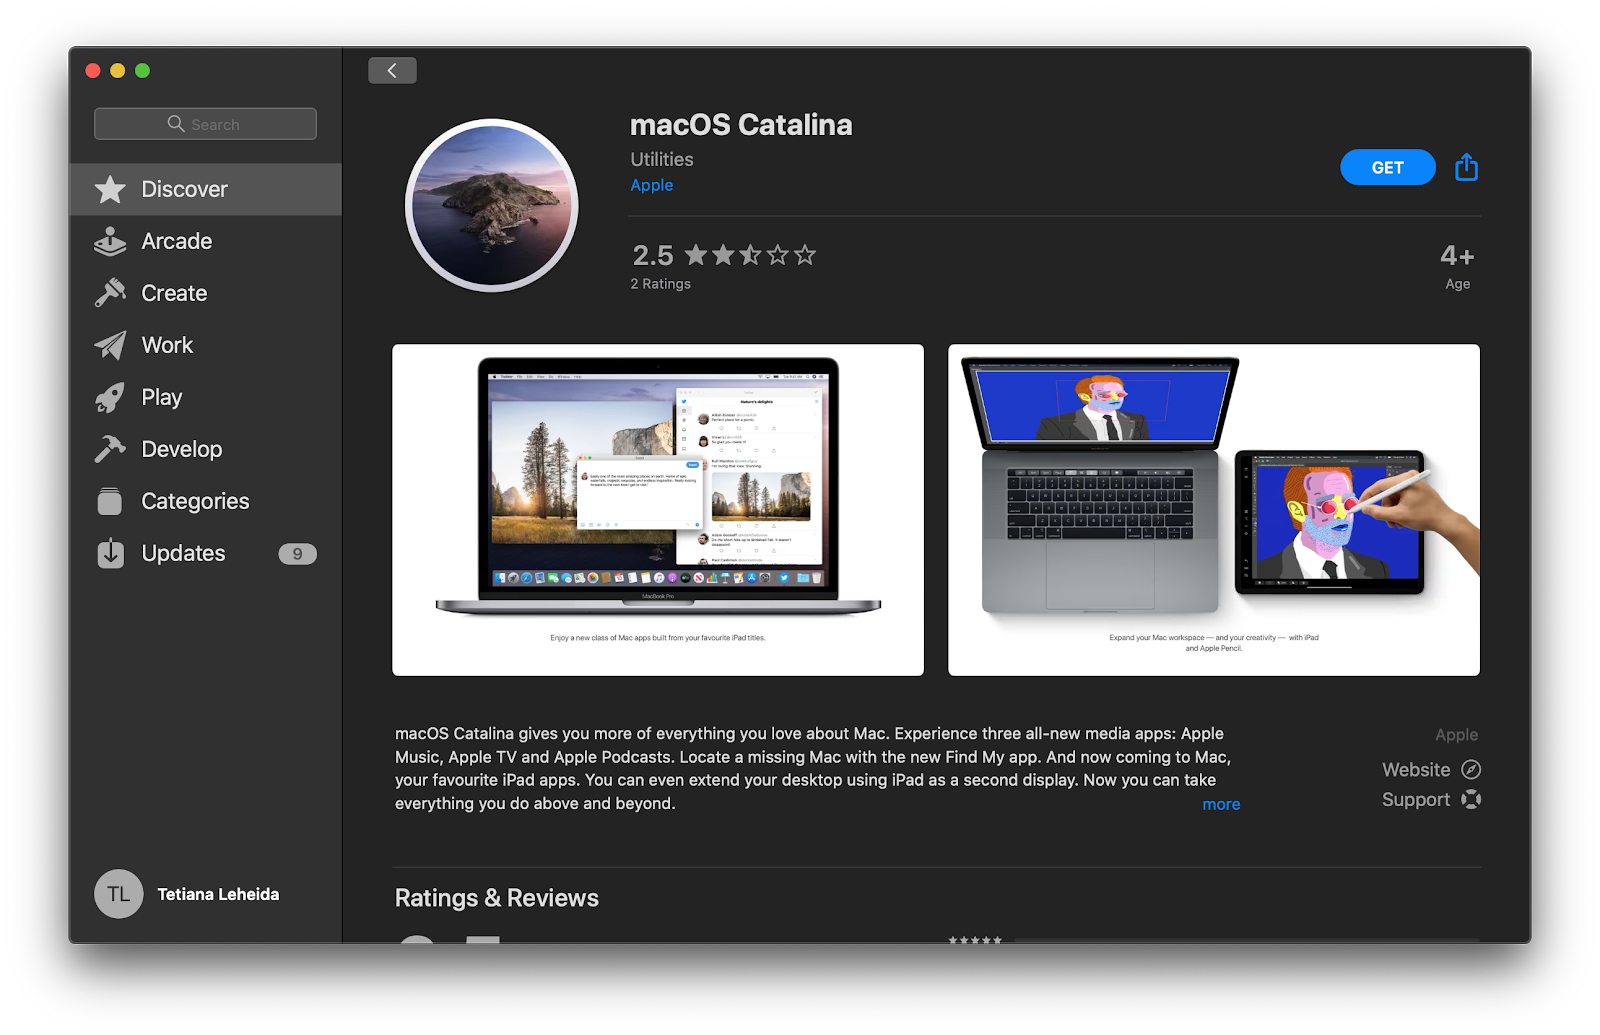 download macOS Catalina App Store